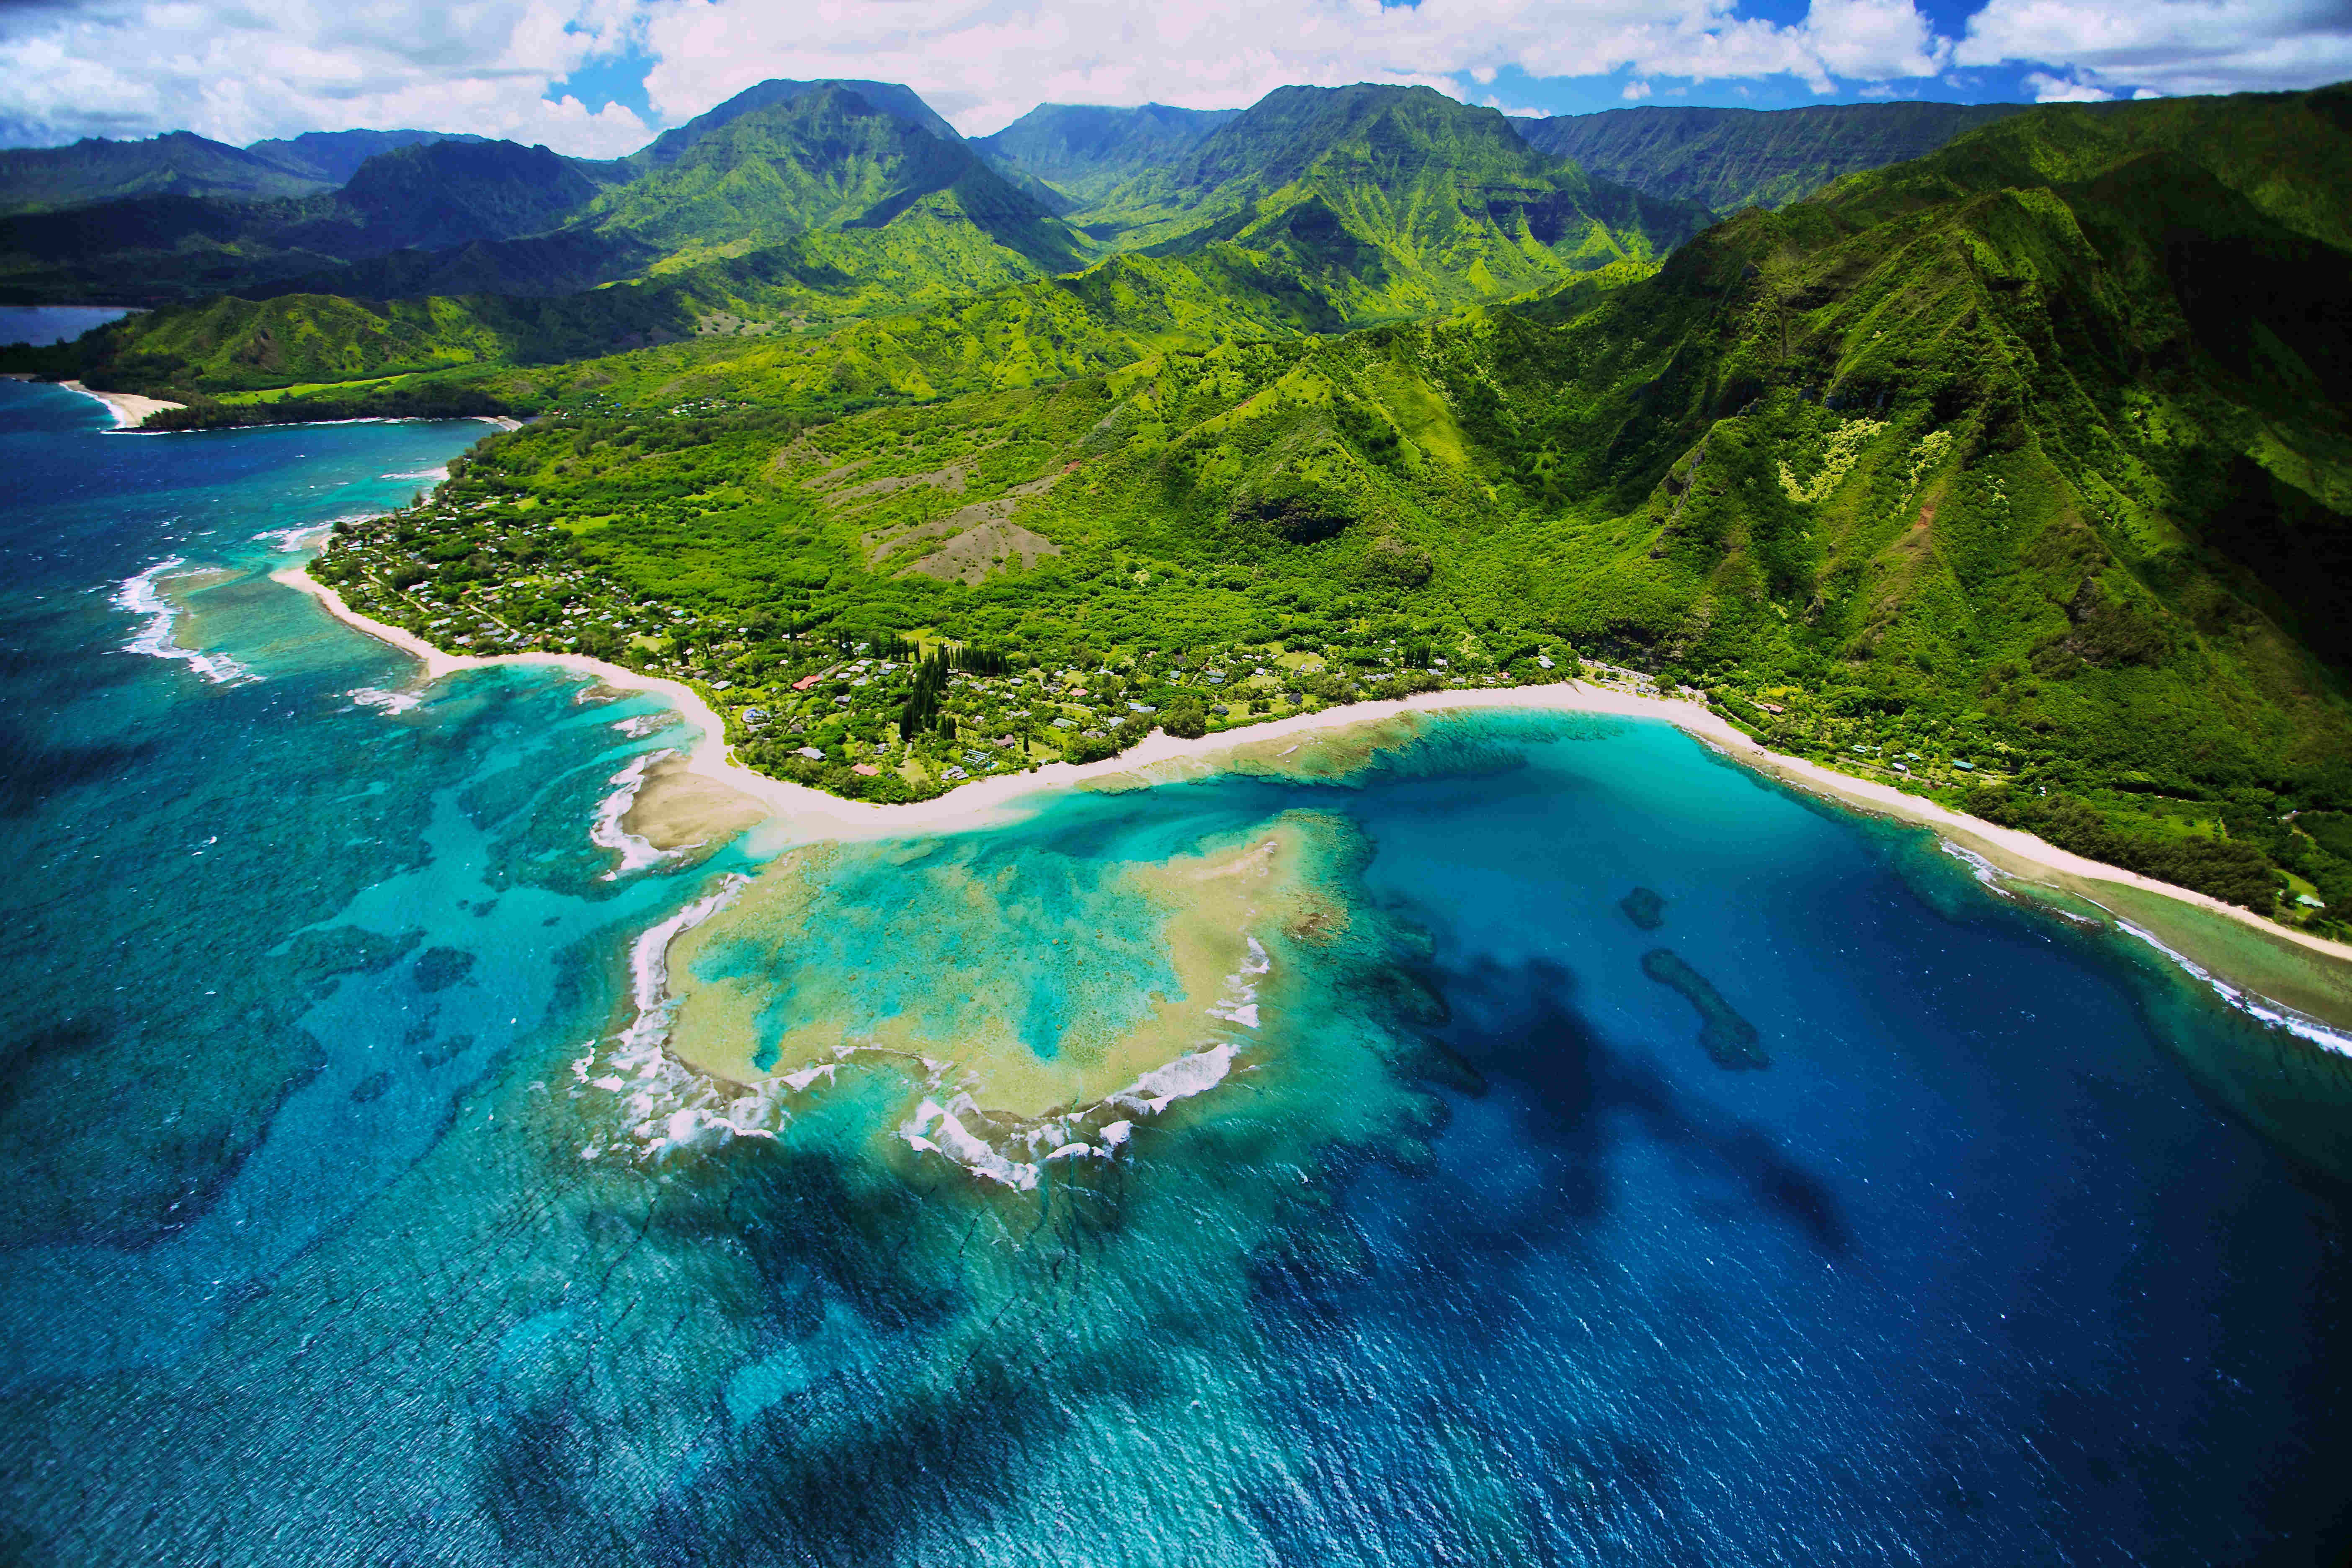 An aerial photo of Tunnels beach. Tunnels is located on Kauai's North Shore and is named after the tunnels that snorkelers and divers can observe when navigating the reef.